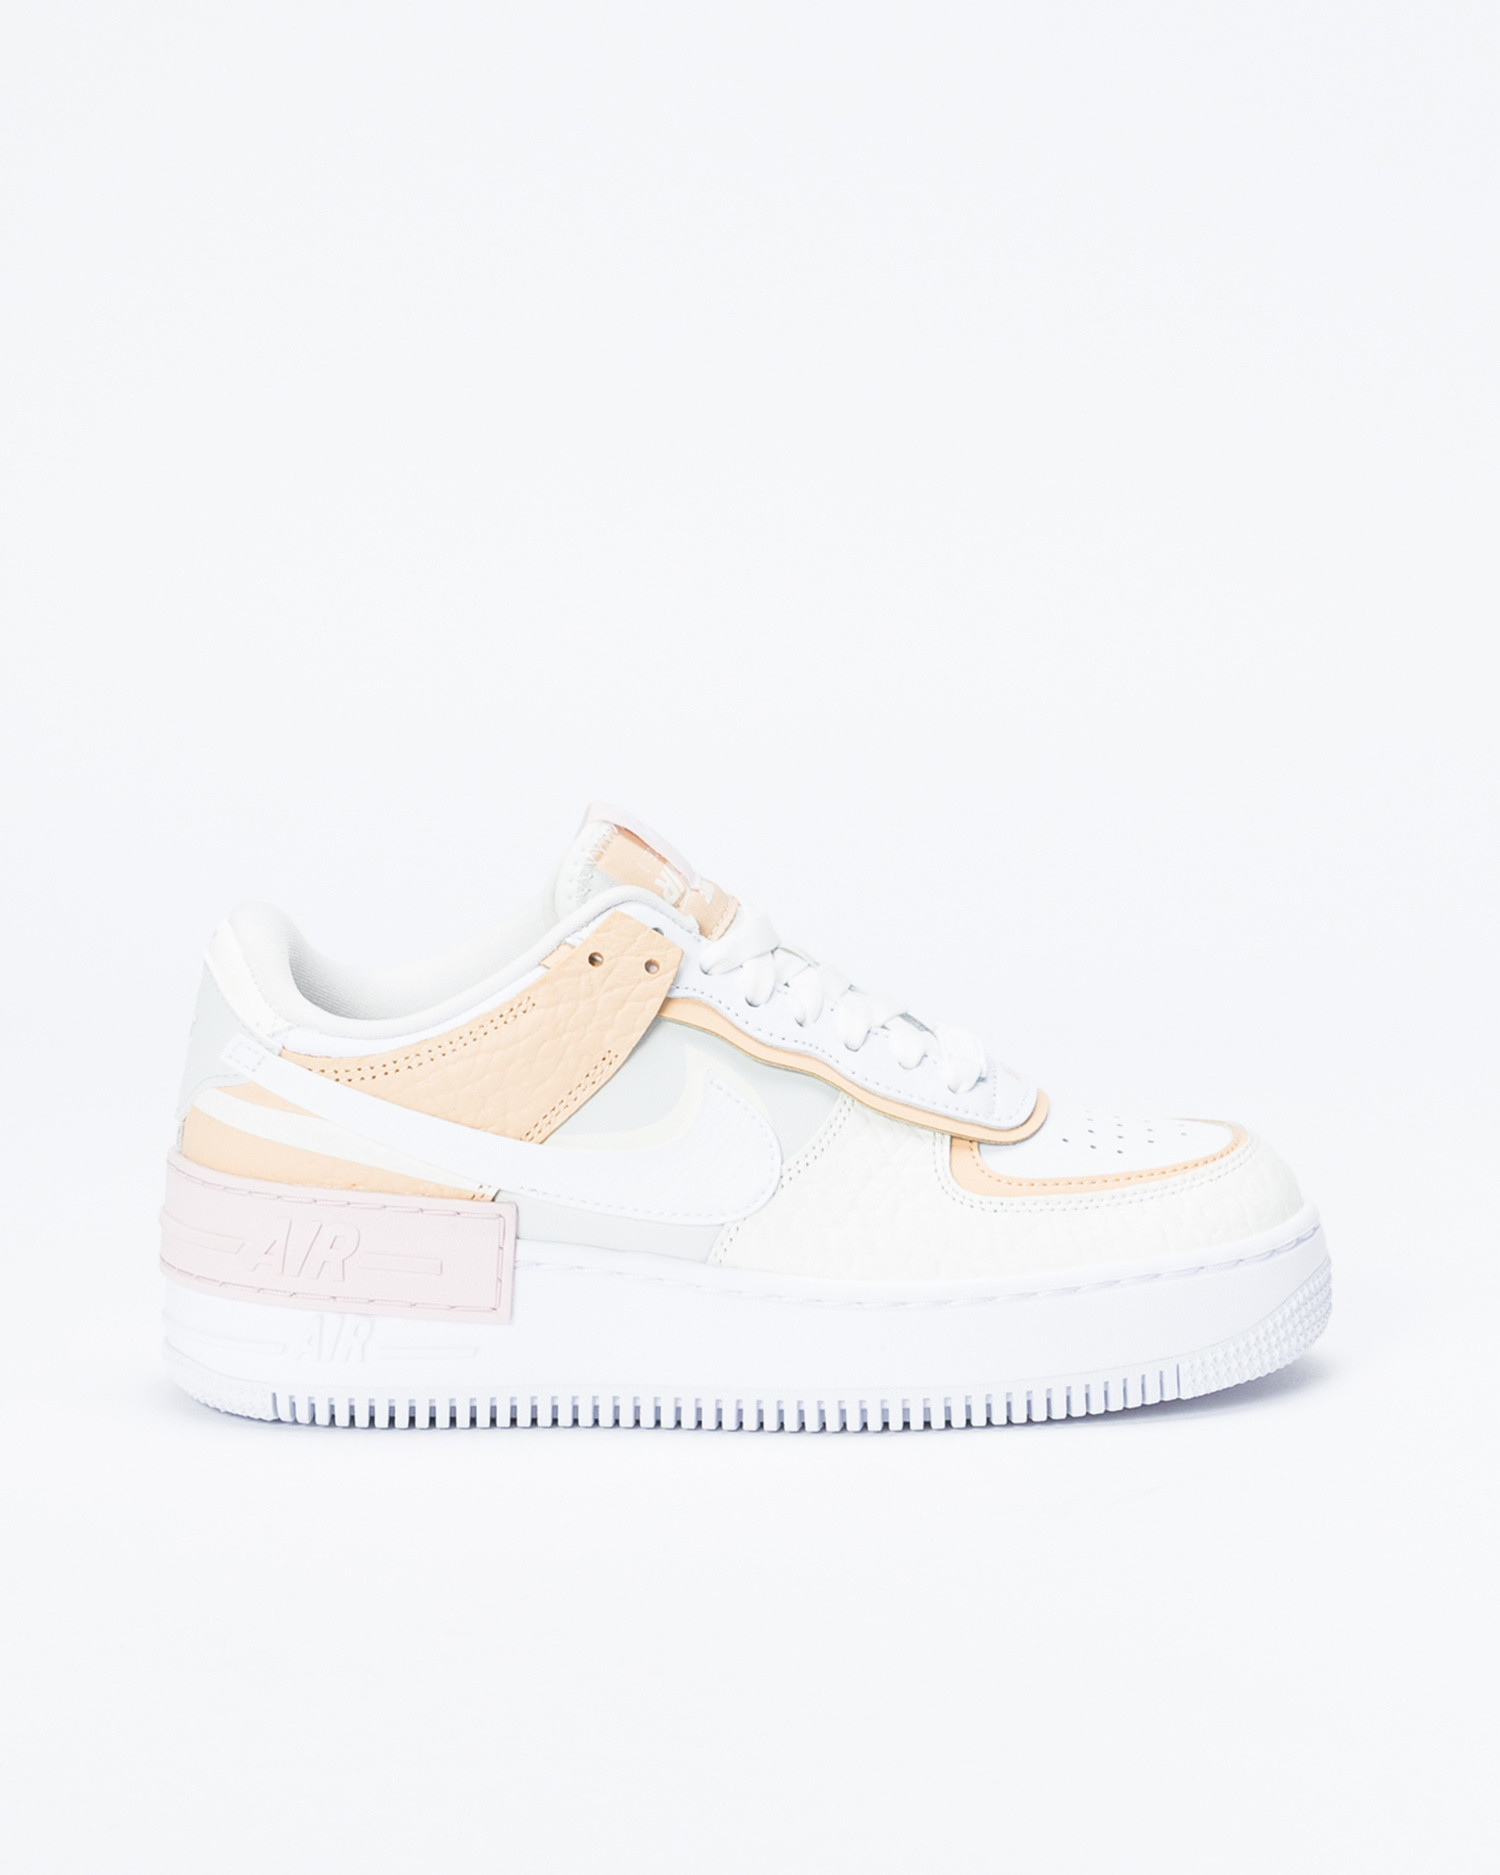 Nike W af1 shadow se Spruce aura/white-sail-black